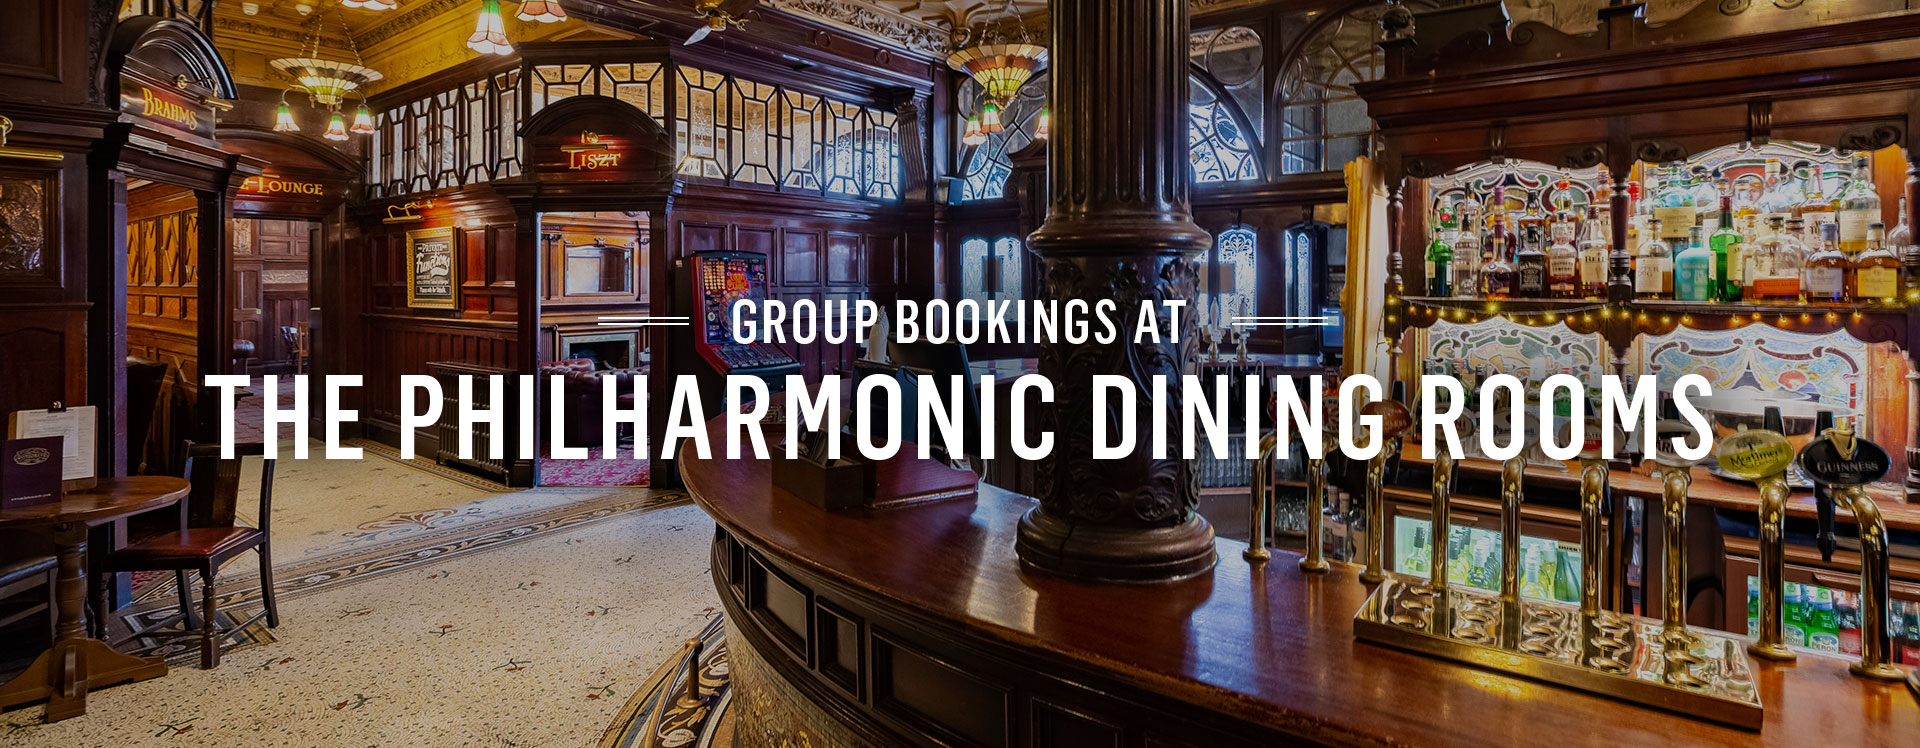 Group Bookings at The Philharmonic Dining Rooms